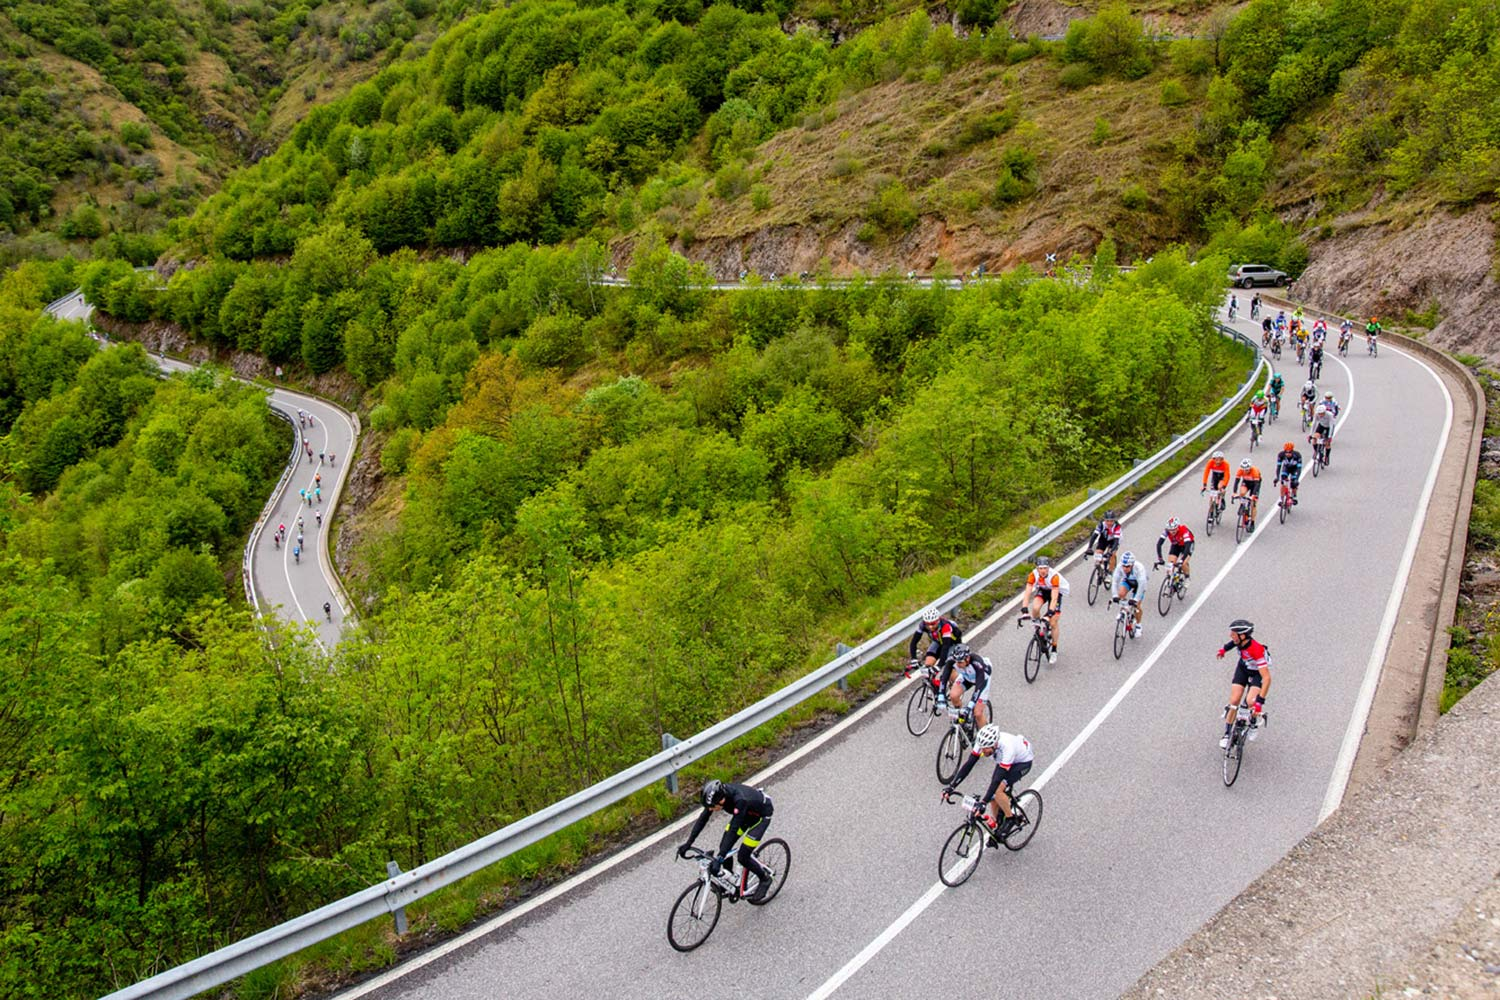 Gran Fondo long distance road cycling rides